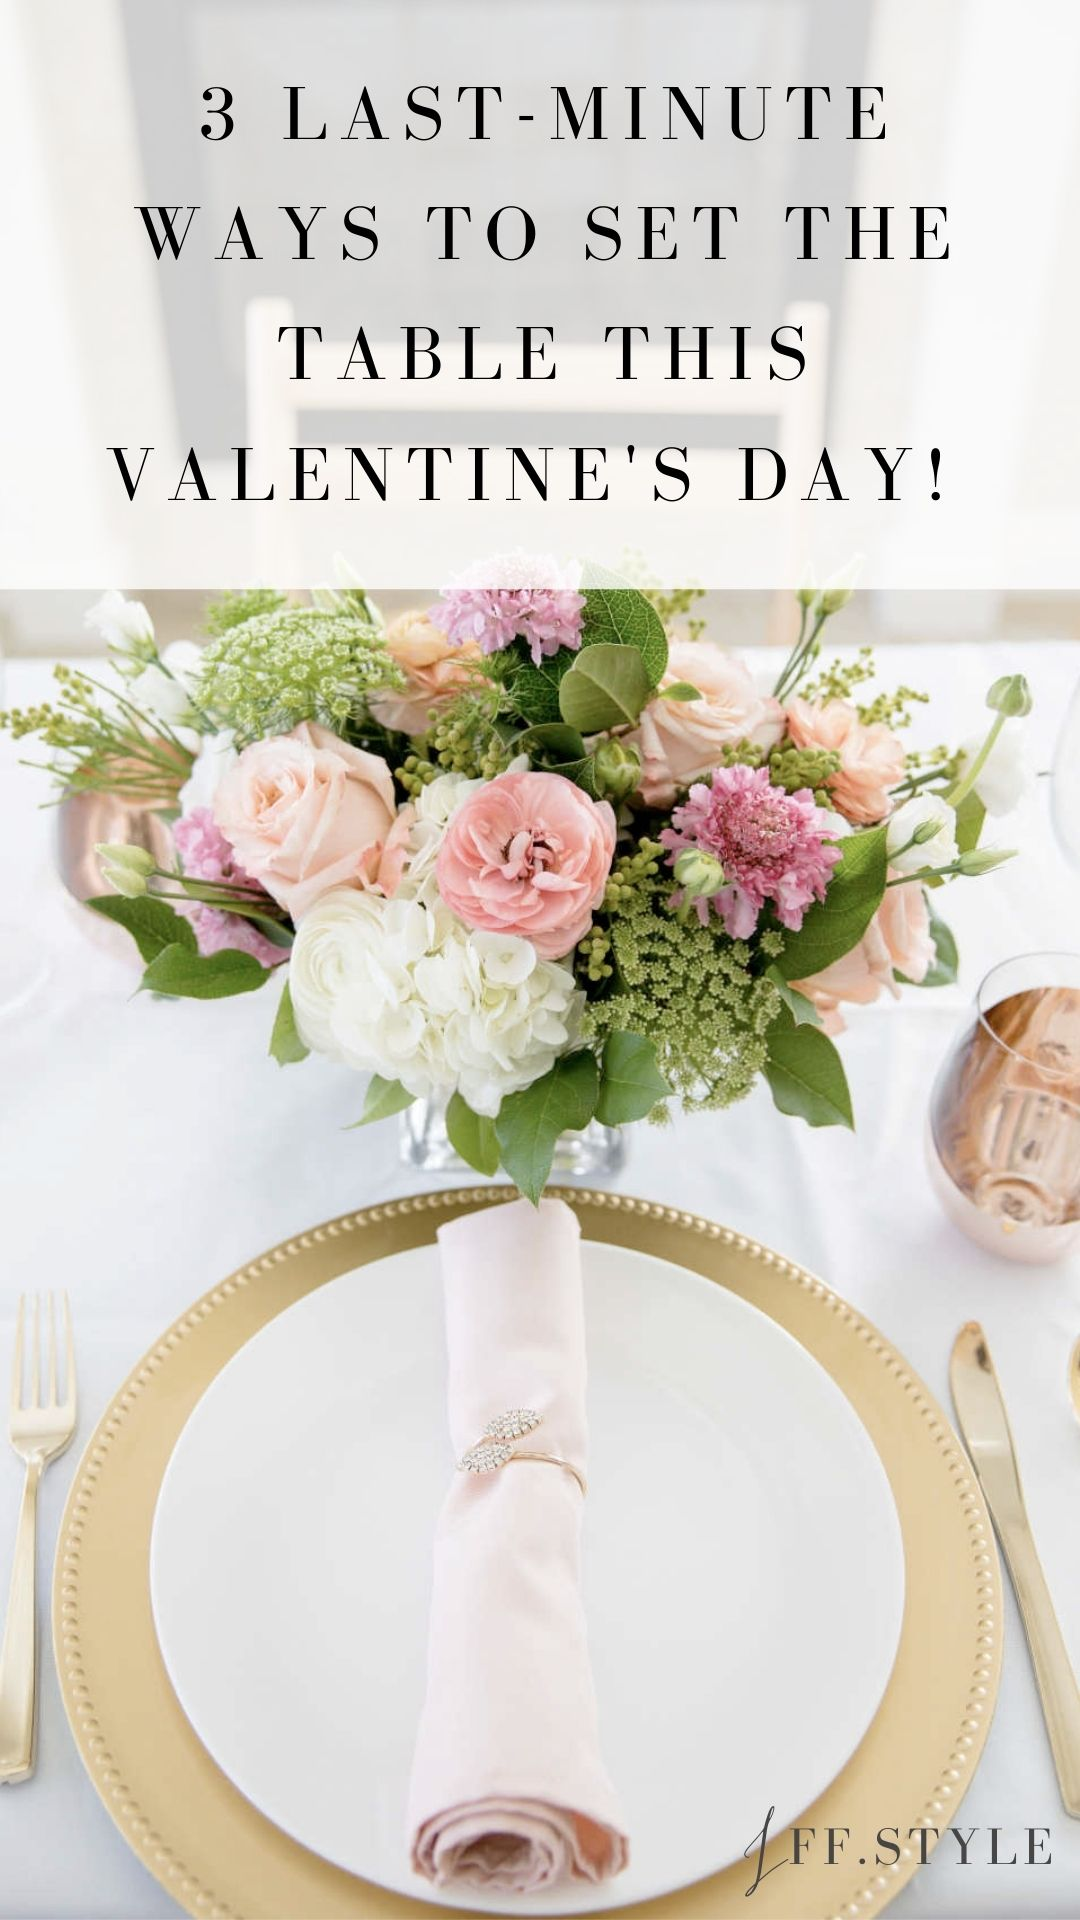 Pinterest Pin-3 Last-minute ways to set the table this Valentine's Day